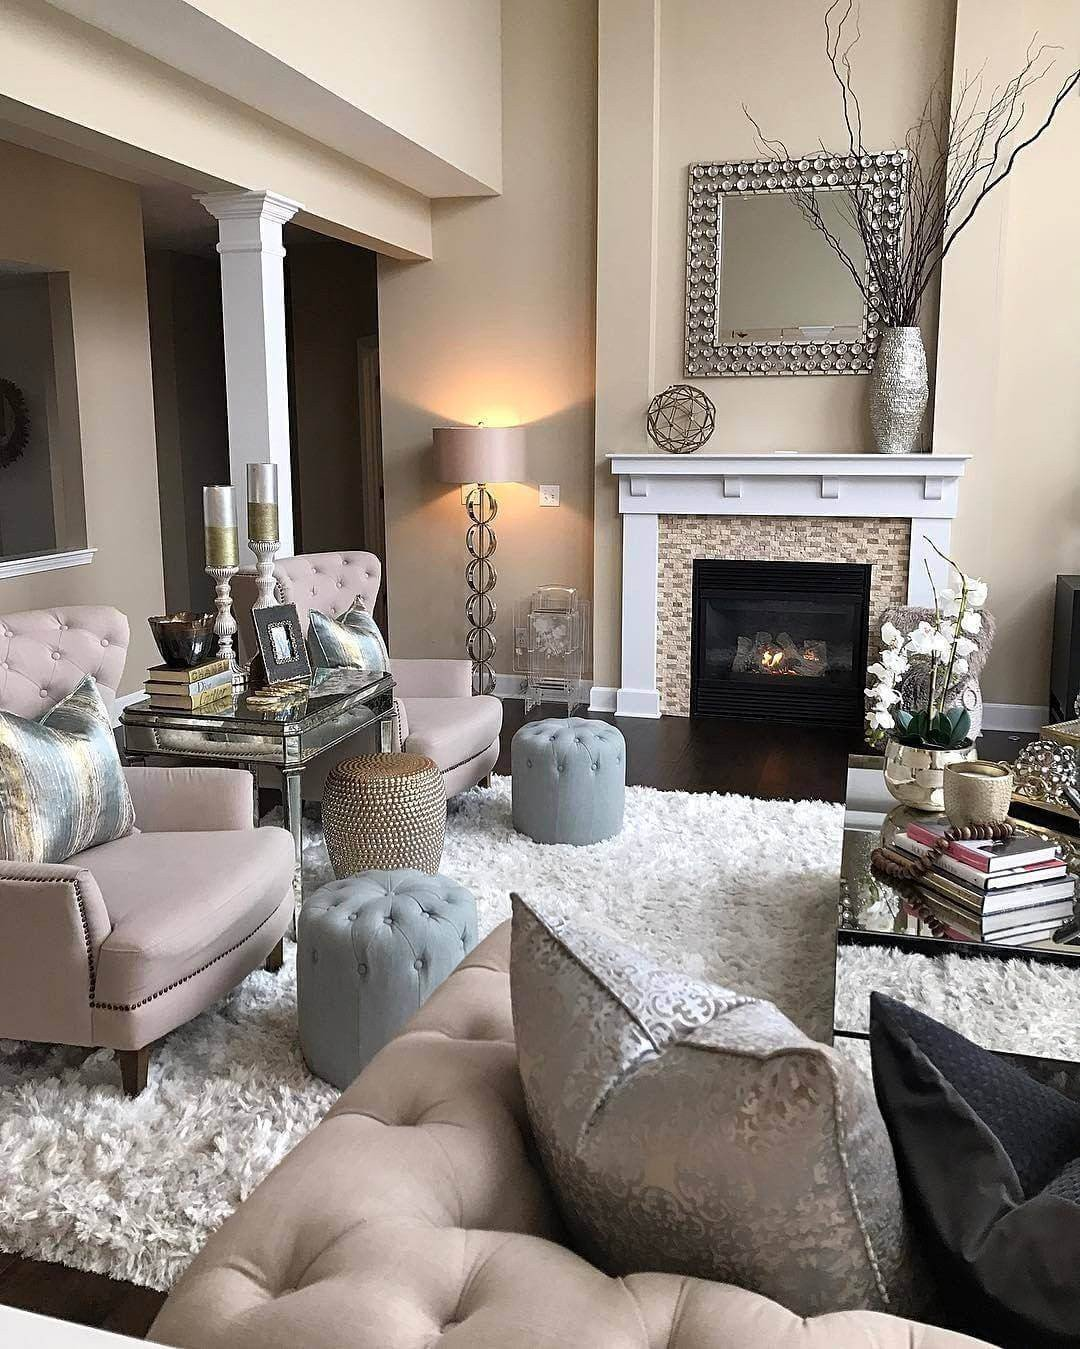 Modern Chic Living Room Decorating Ideas Awesome 26 Best Modern Living Room Decorating Ideas and Designs for 2017